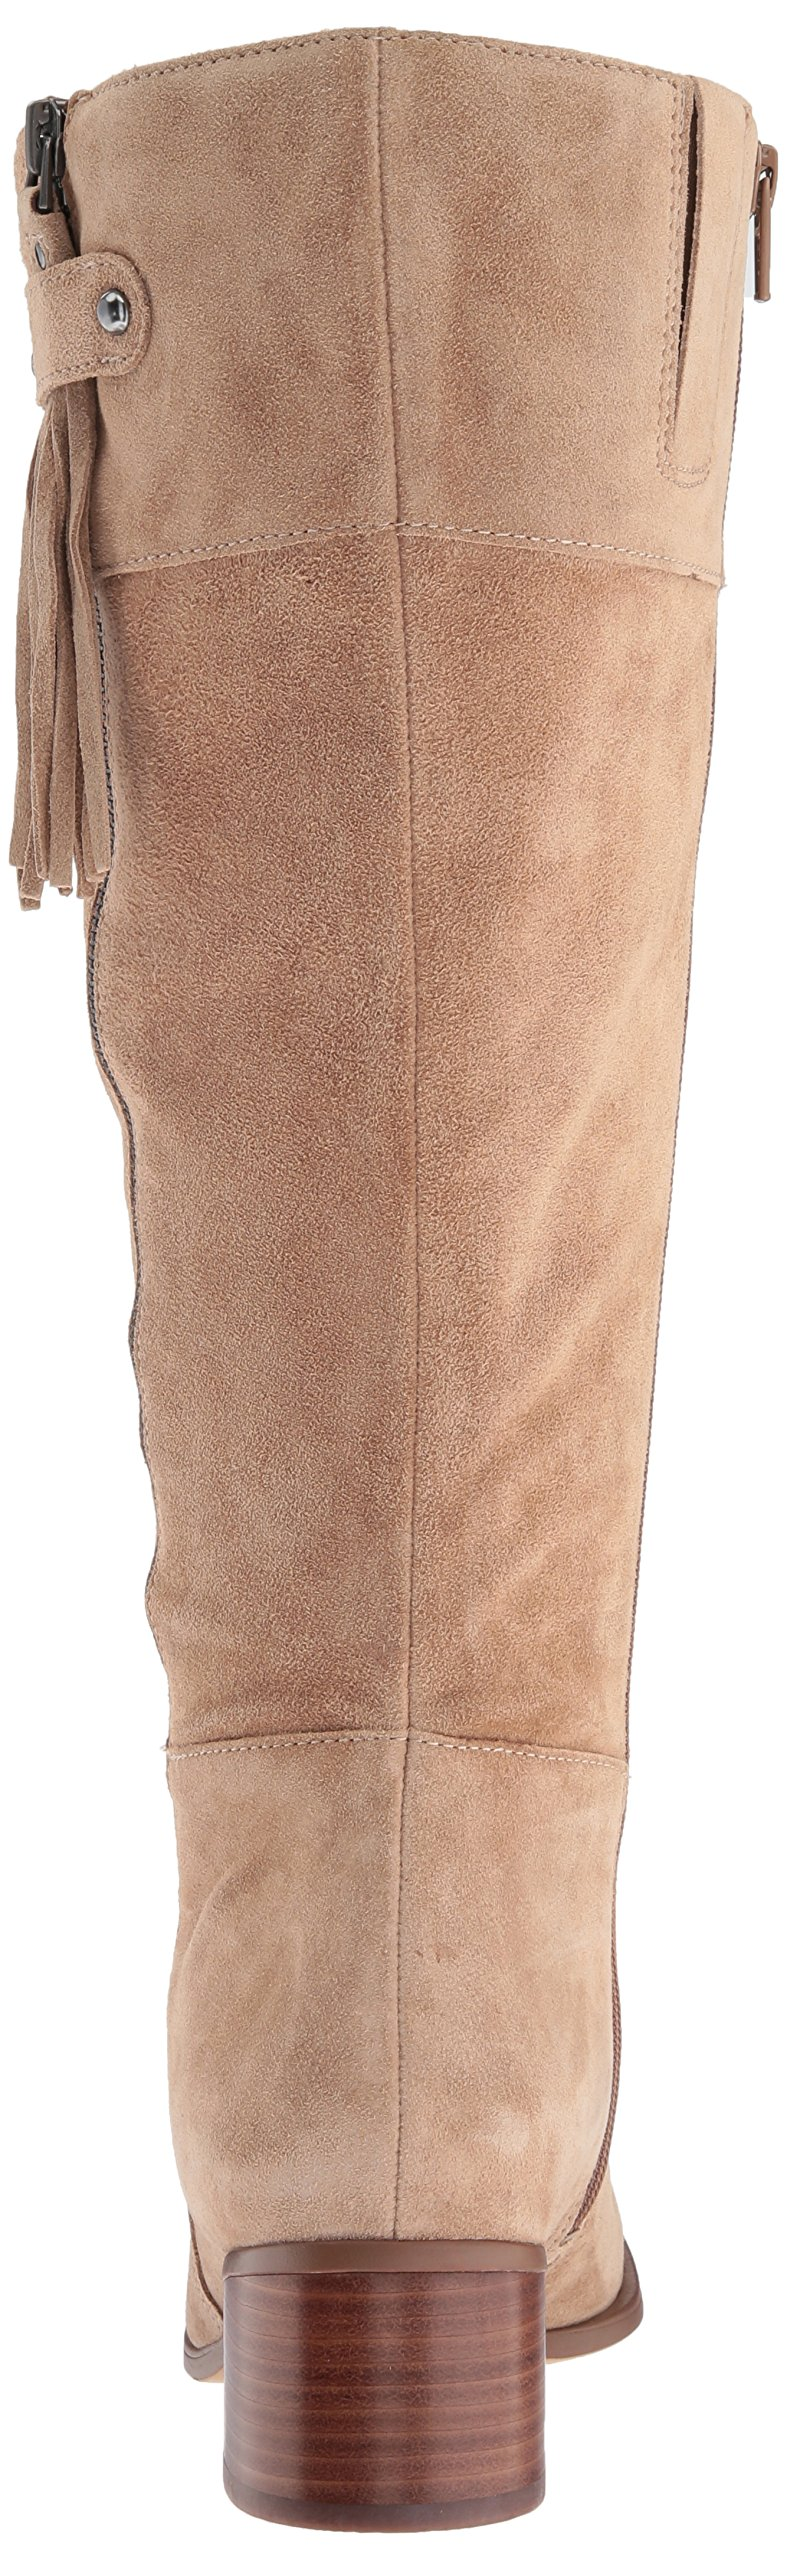 Naturalizer Women's Demi Wc Riding Boot, Oatmeal, 9 M US by Naturalizer (Image #2)